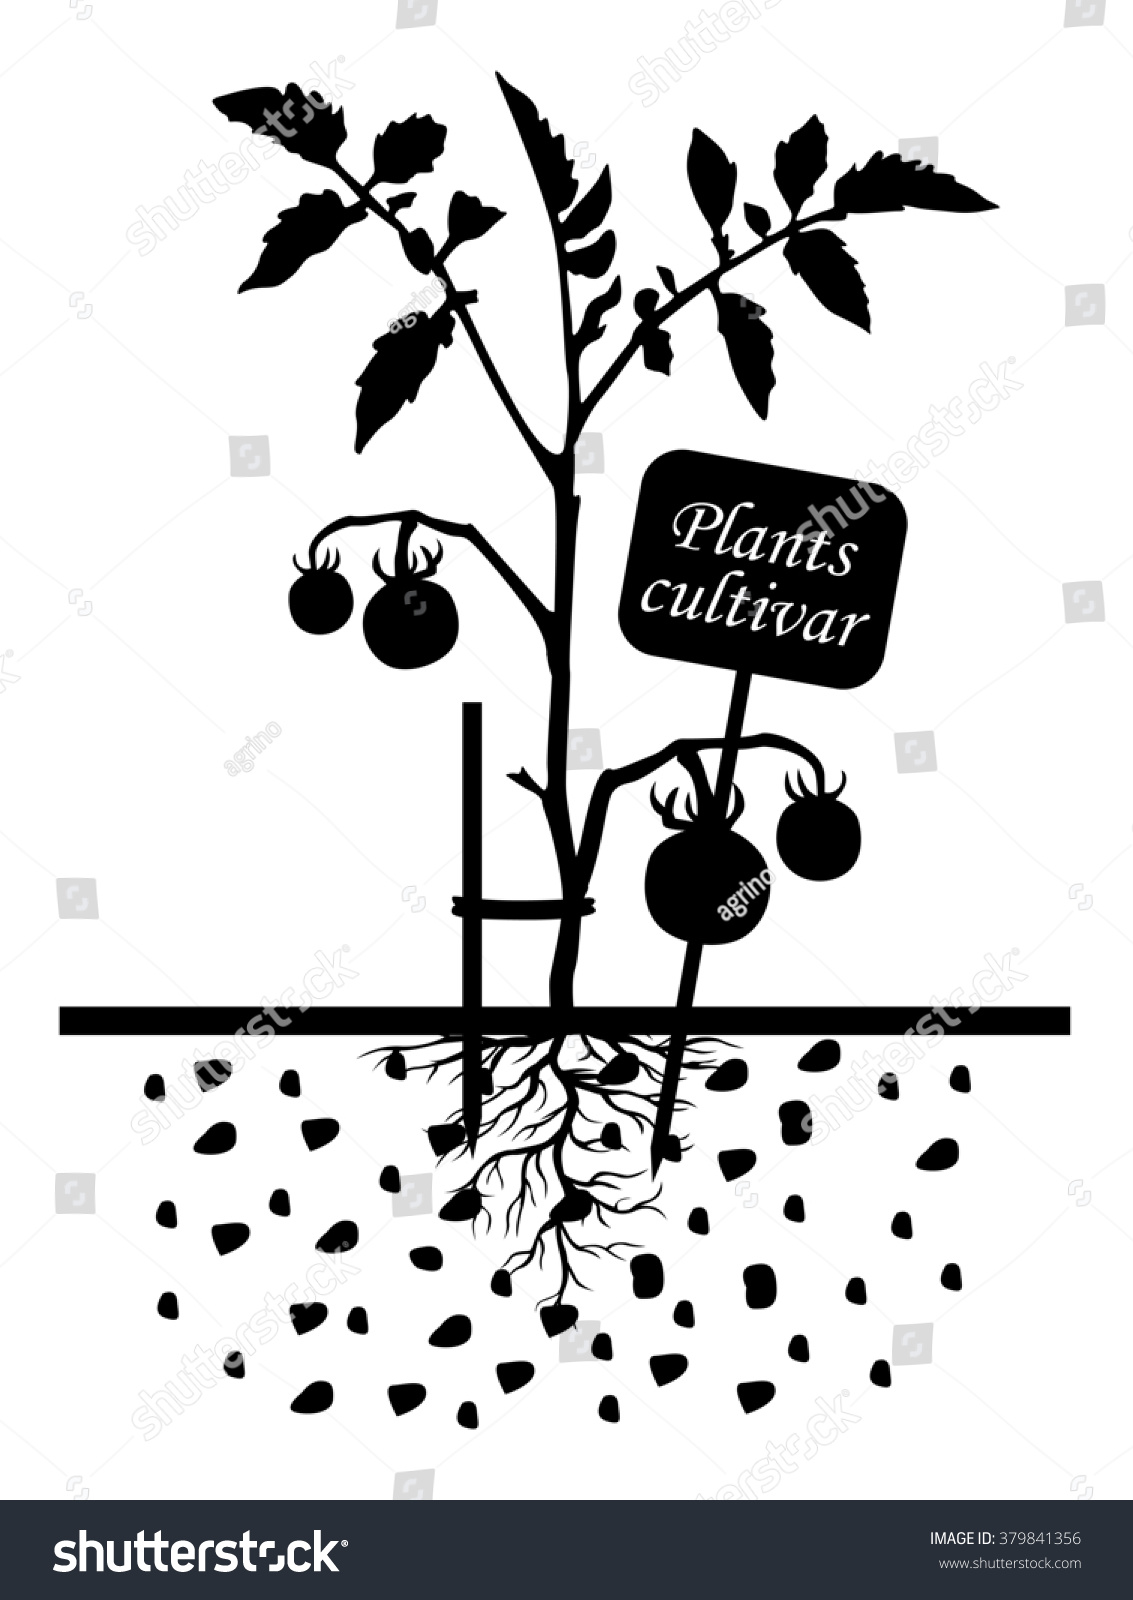 illustrations of Set of silhouettes of tomato plants with label cultivar